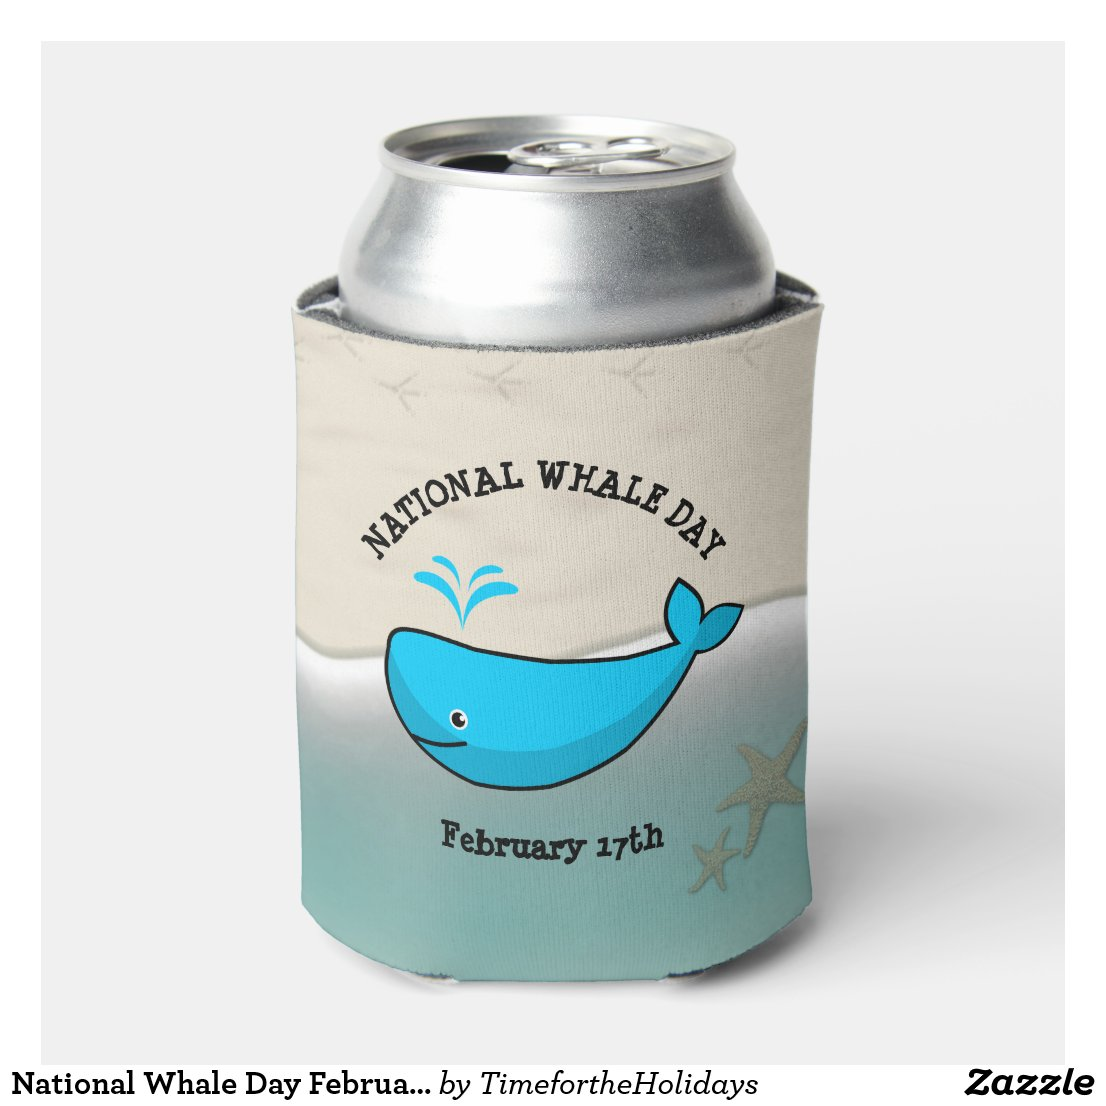 National Whale Day February 17th Soda Can Cooler